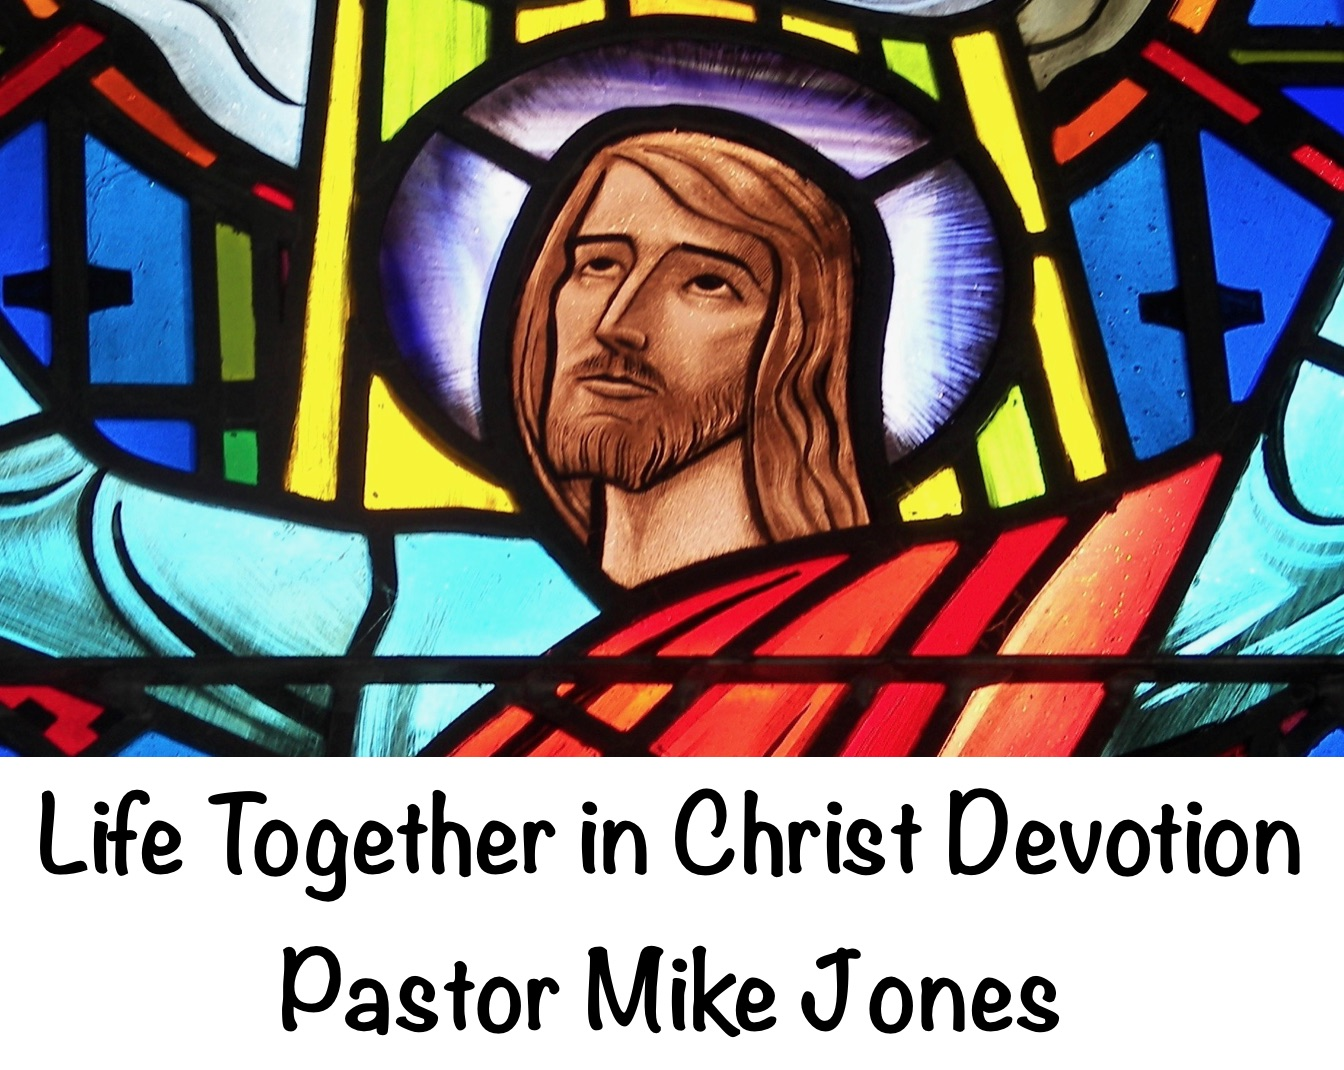 Life Together in Christ Devotion on Romans 8:29-30 regarding God Completing His Work in Us